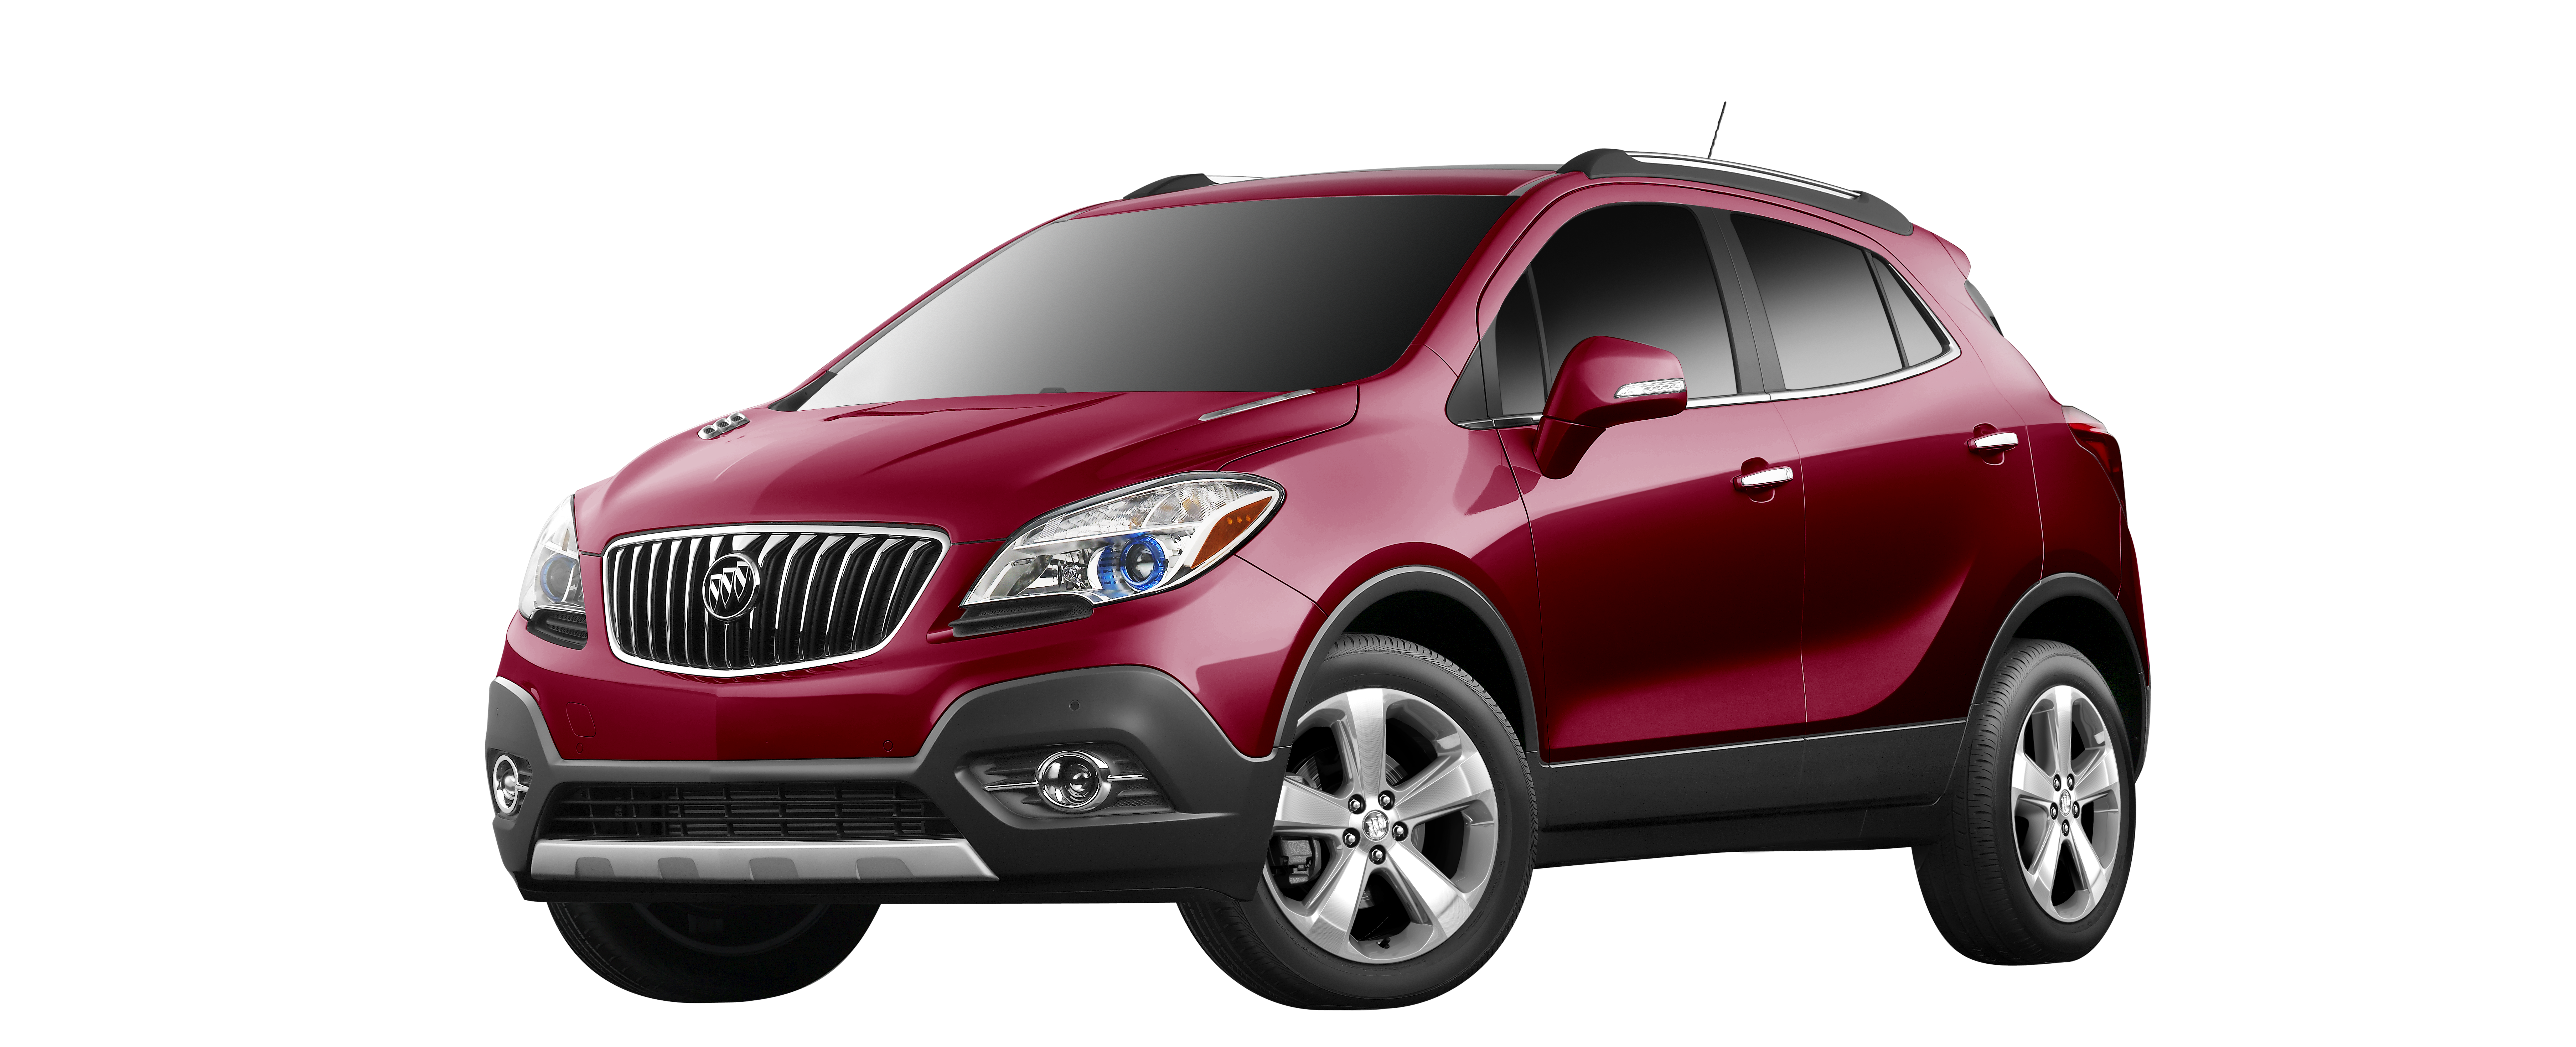 muscatine kriegers inventory a gmc is chevrolet lease new buick encore specials